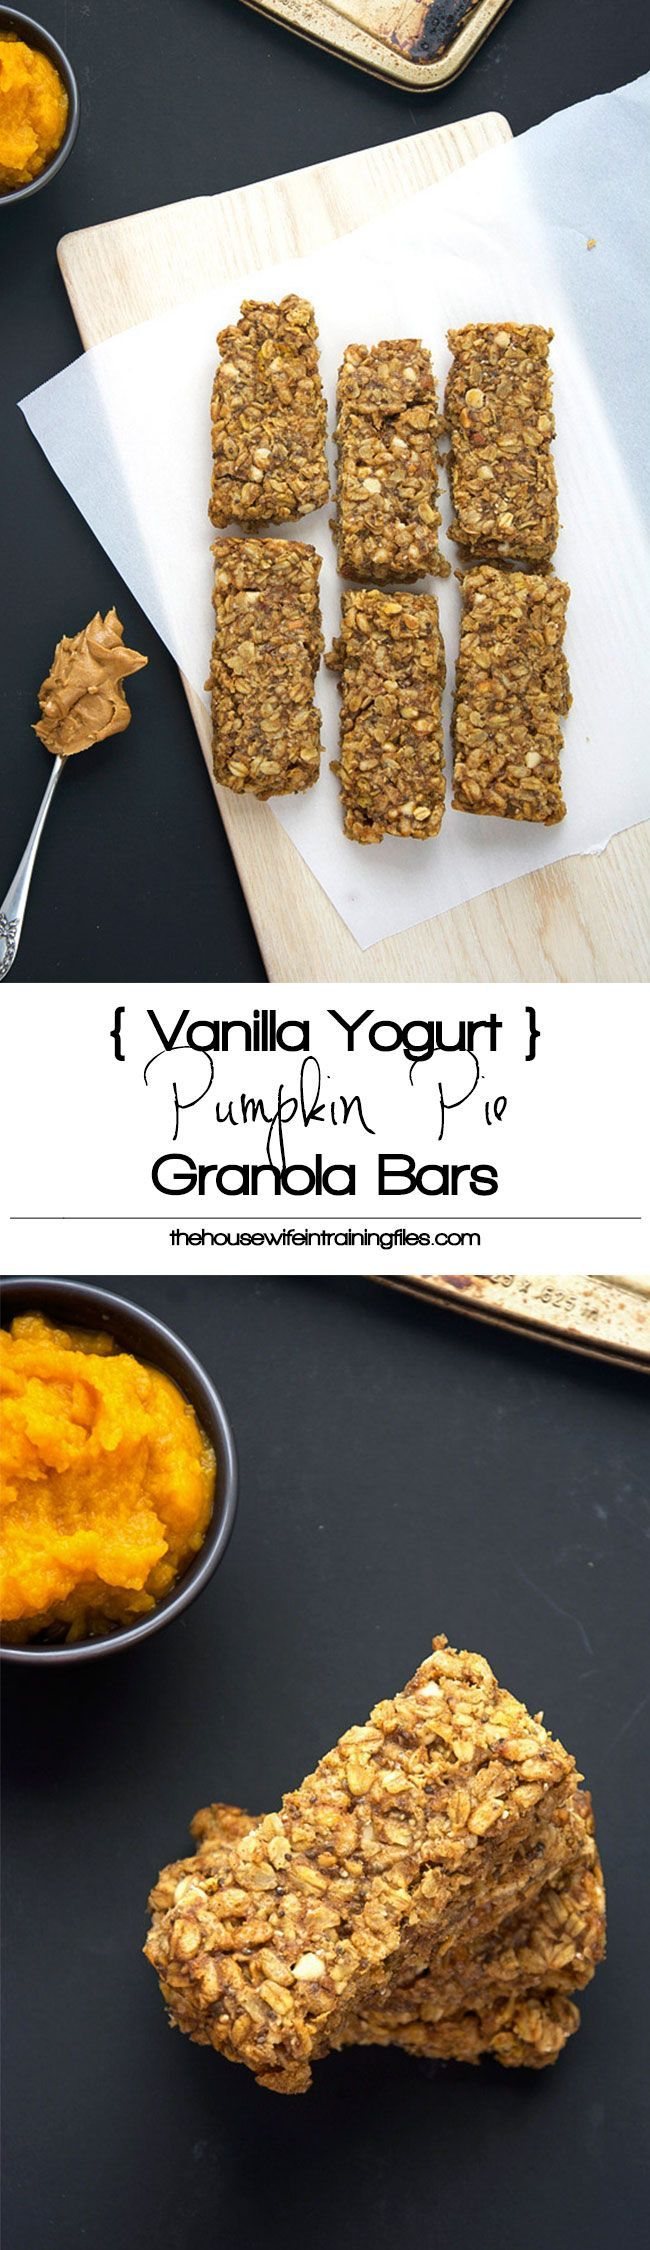 Pumpkin Granola Bars Recipe | healthy, chewy, easy, maple syrup, peanut butter,